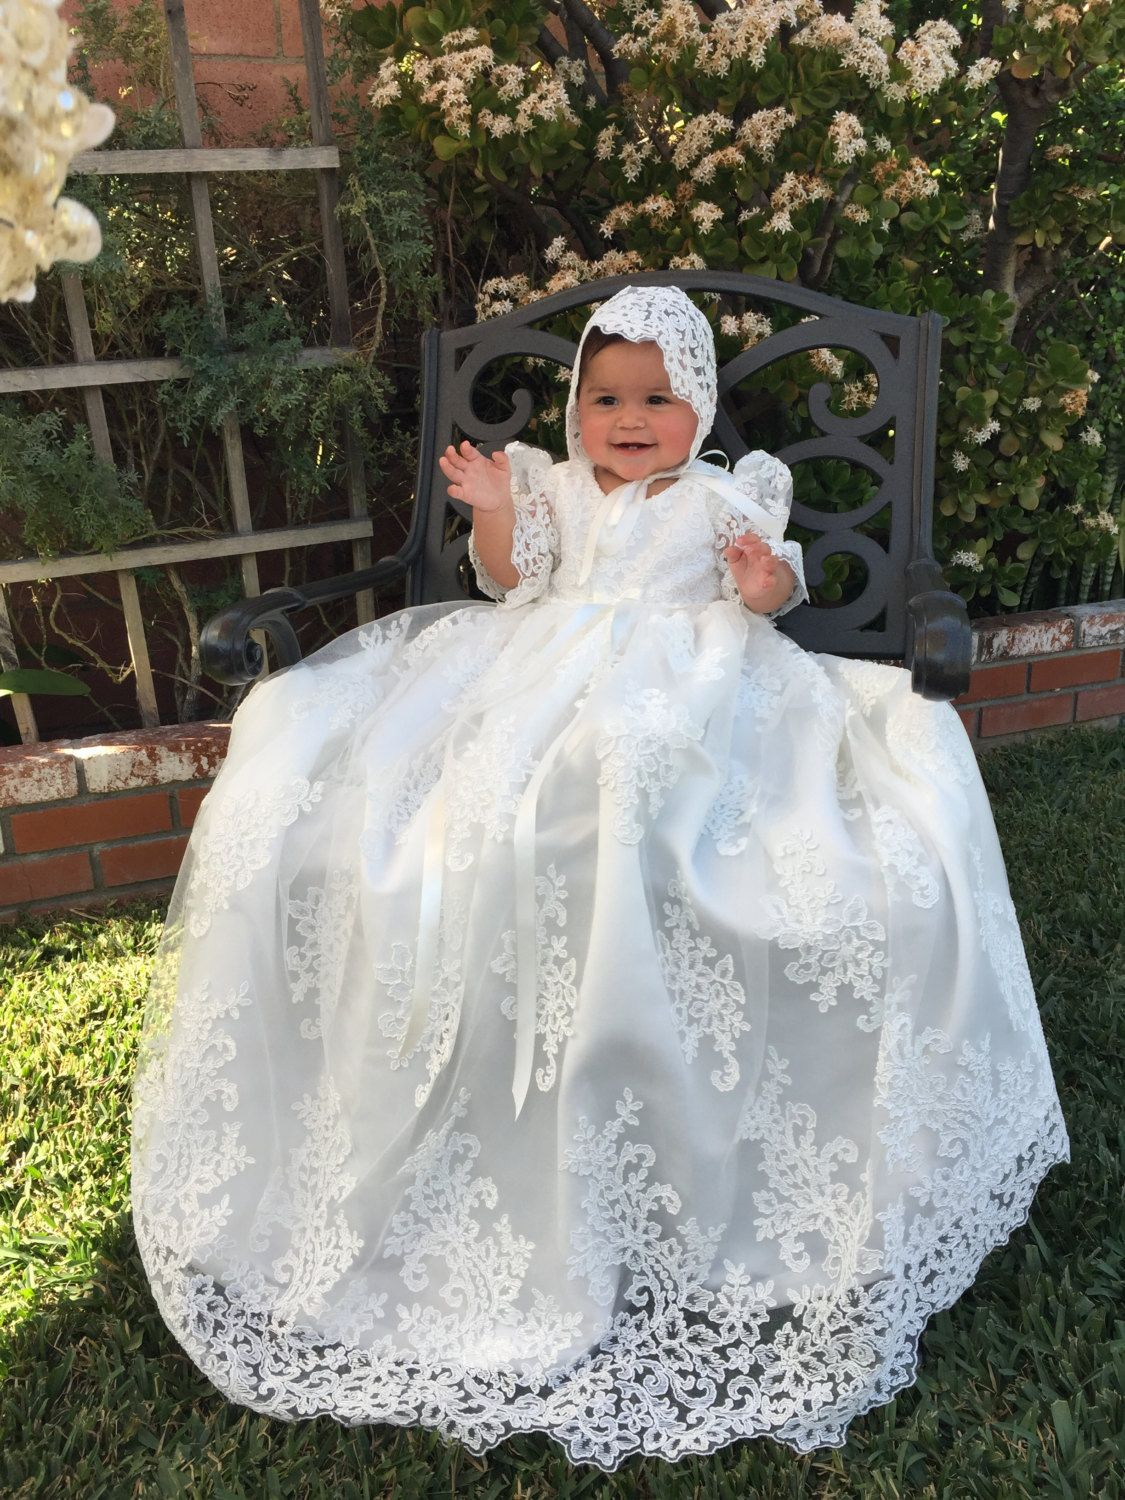 e95cf12f7f634 Stunning Alencon Lace Christening Gown, Baptism dress, Girls ...